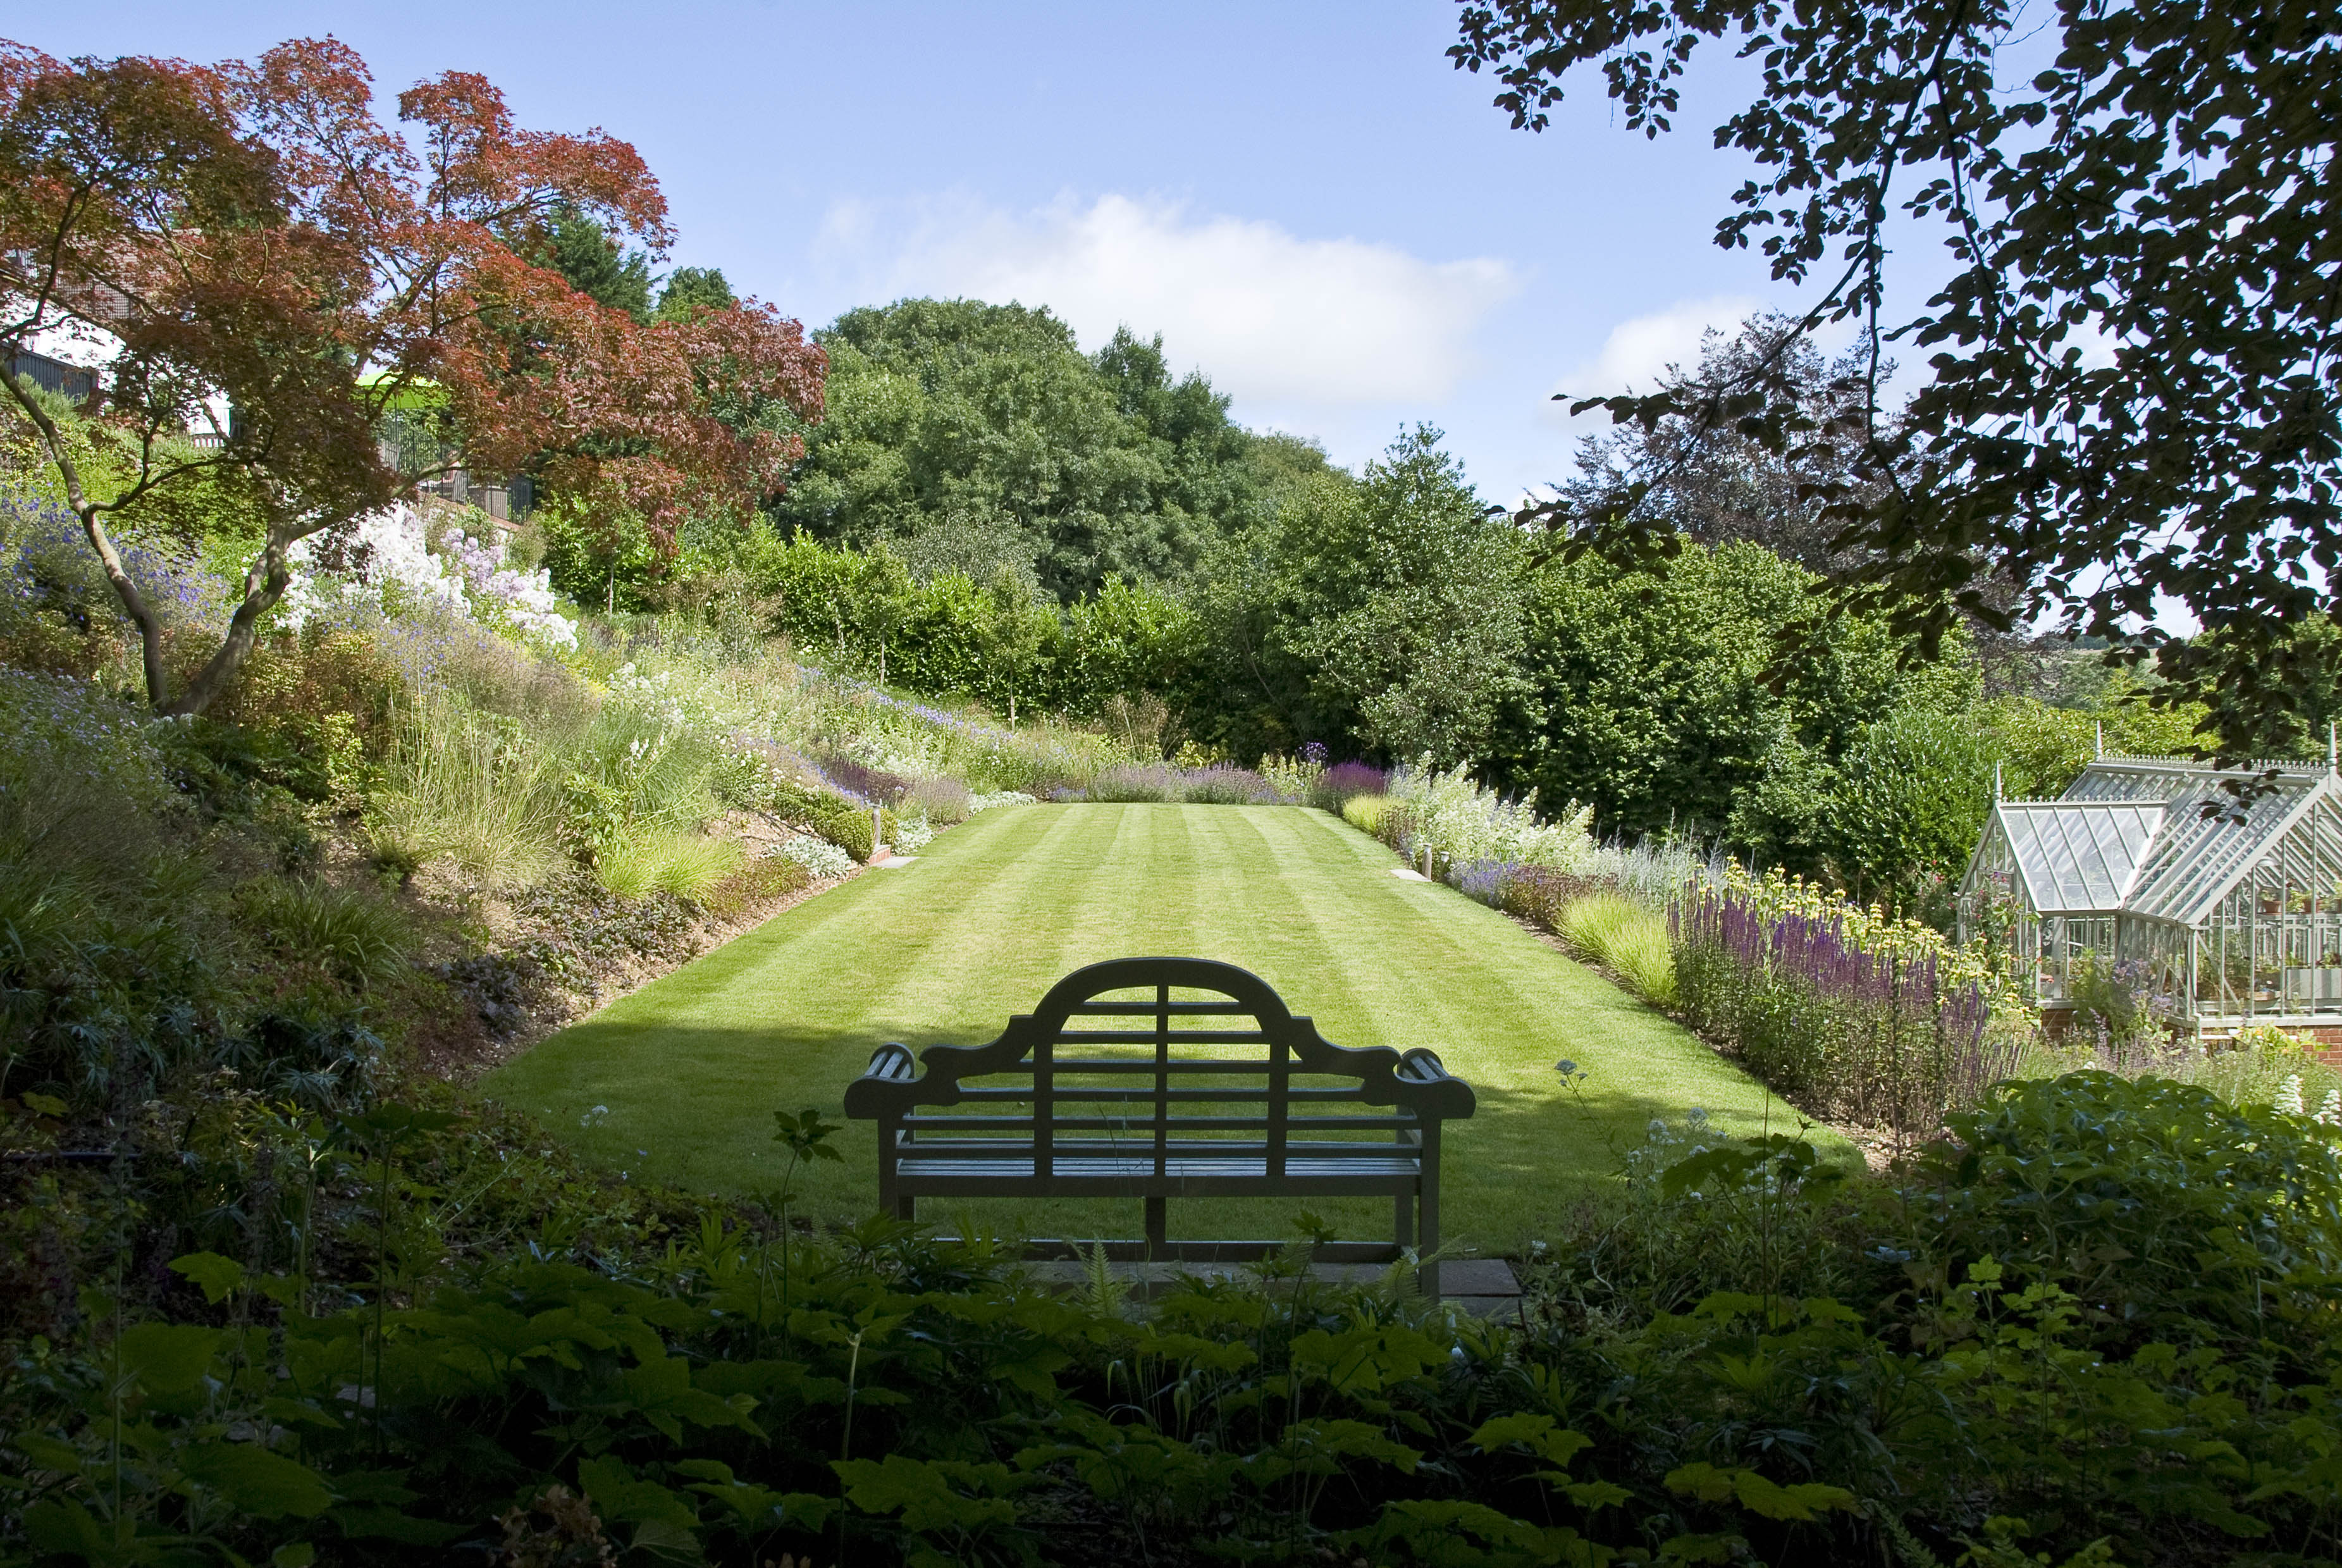 Acres Wild Steeply Sloping Bench on Lawn Area